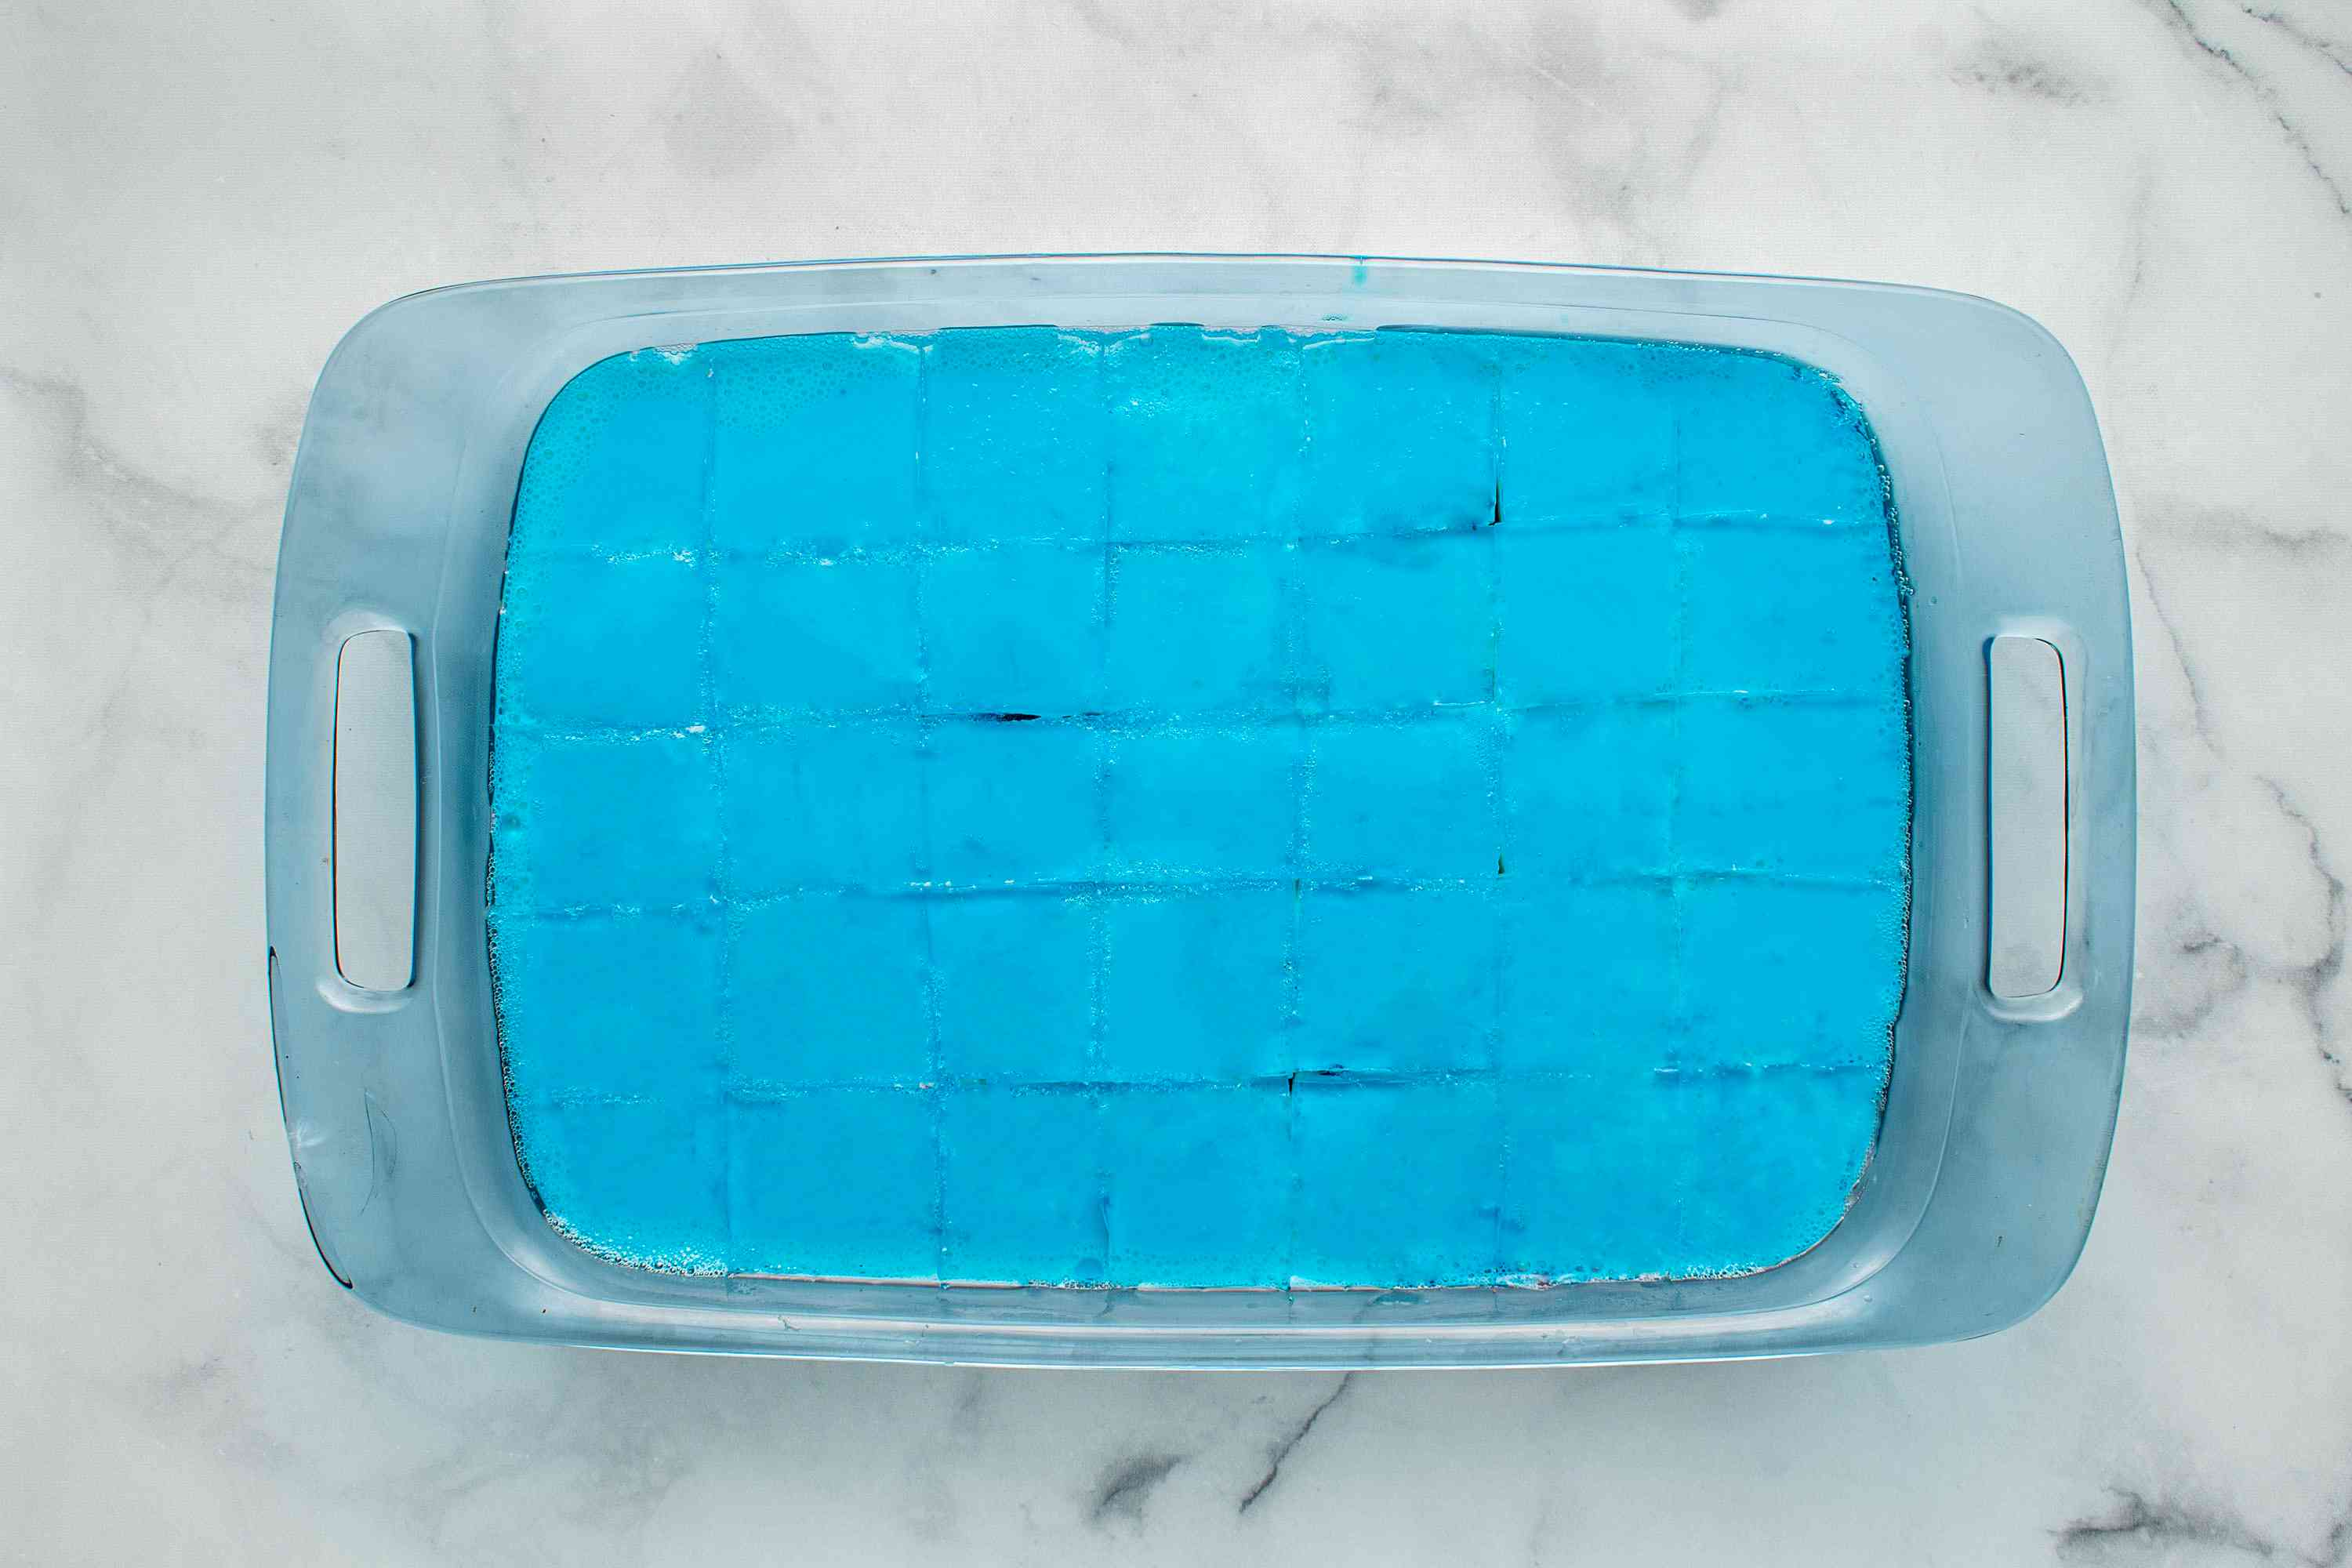 red, white and blue jello sliced into pieces in a dish